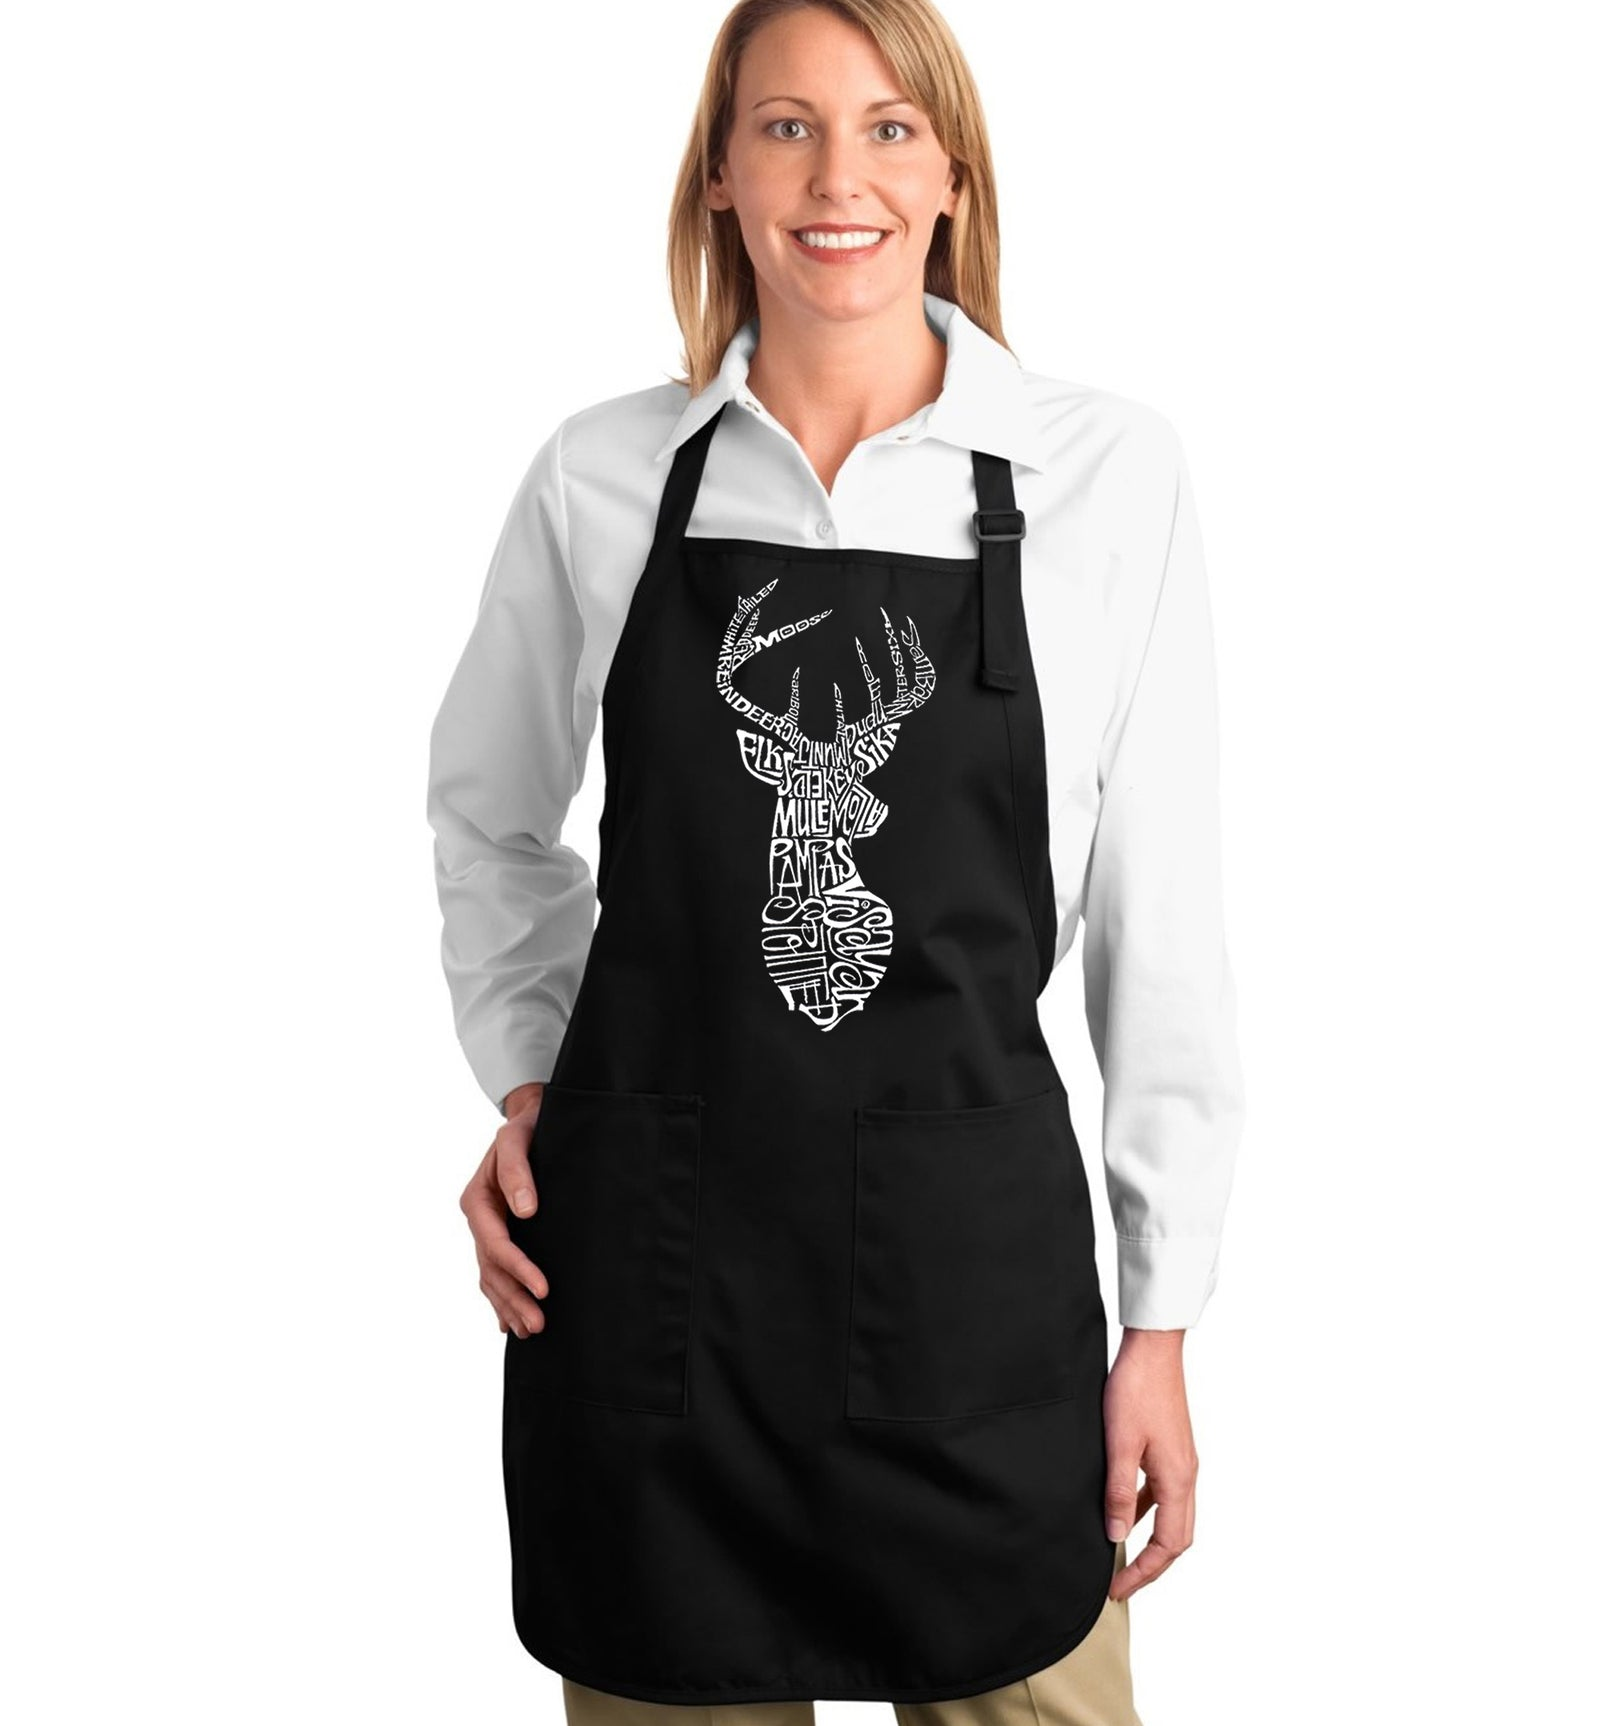 Full Length Apron - Types of Deer